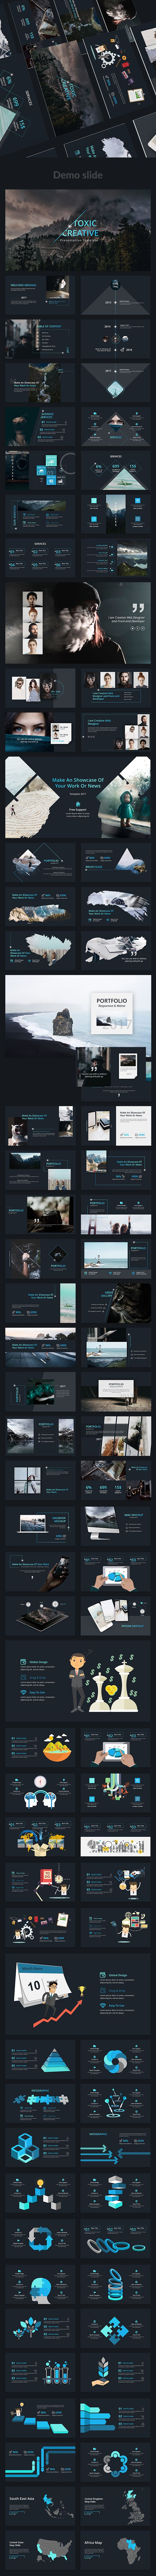 Toxic V2 Creative Powerpoint Template